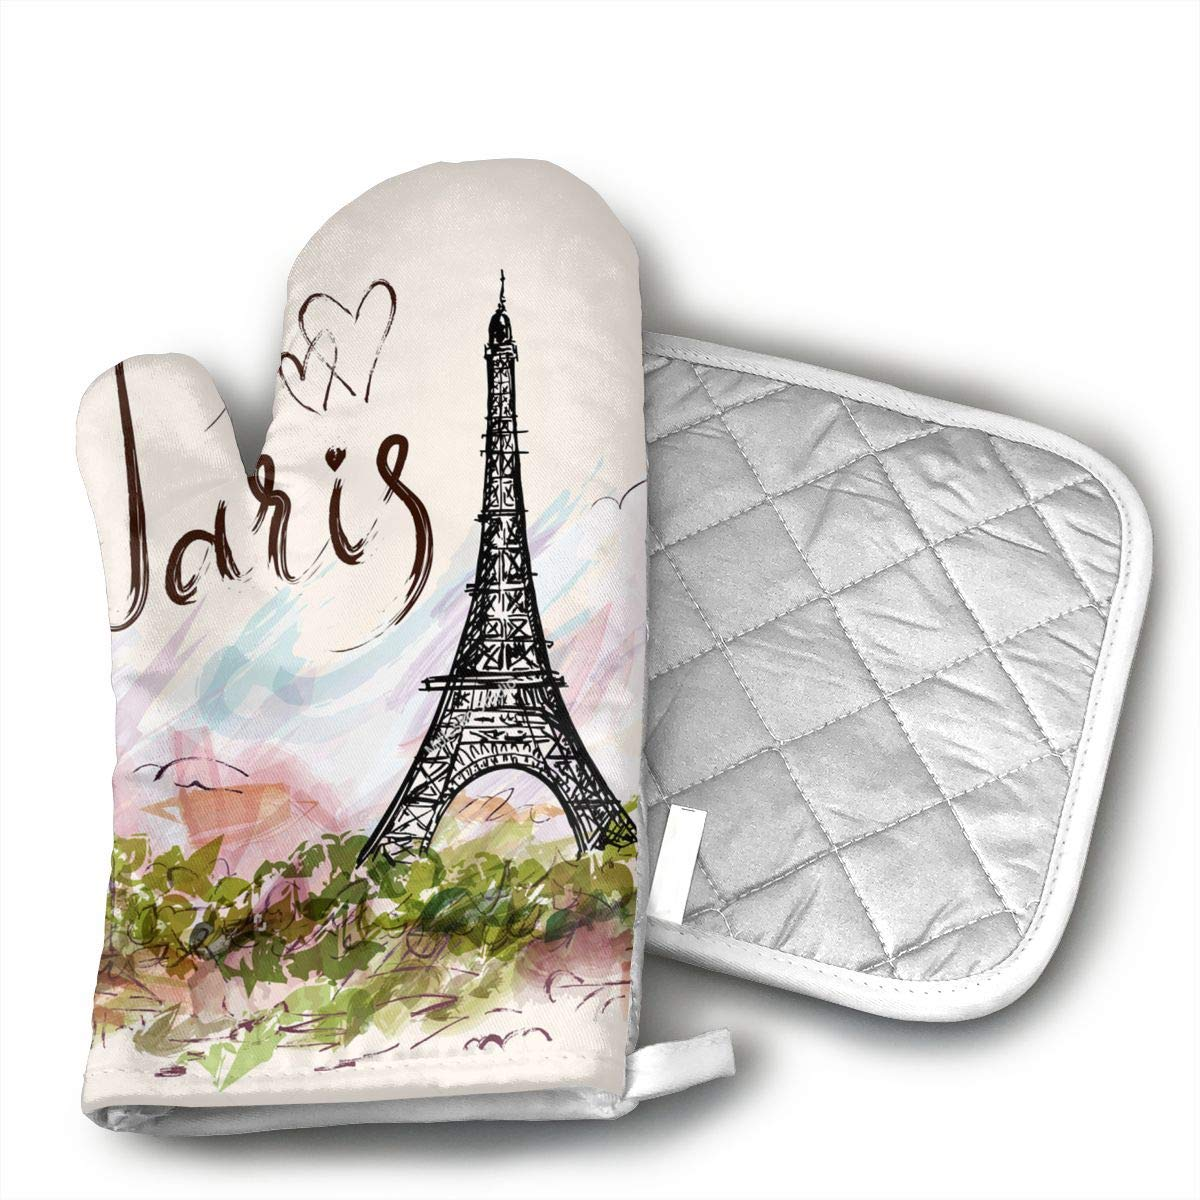 HEPKL Oven Mitts and Potholders The Famous Paris Eiffel Tower Non-Slip Grip Heat Resistant Oven Gloves BBQ Cooking Baking Grilling